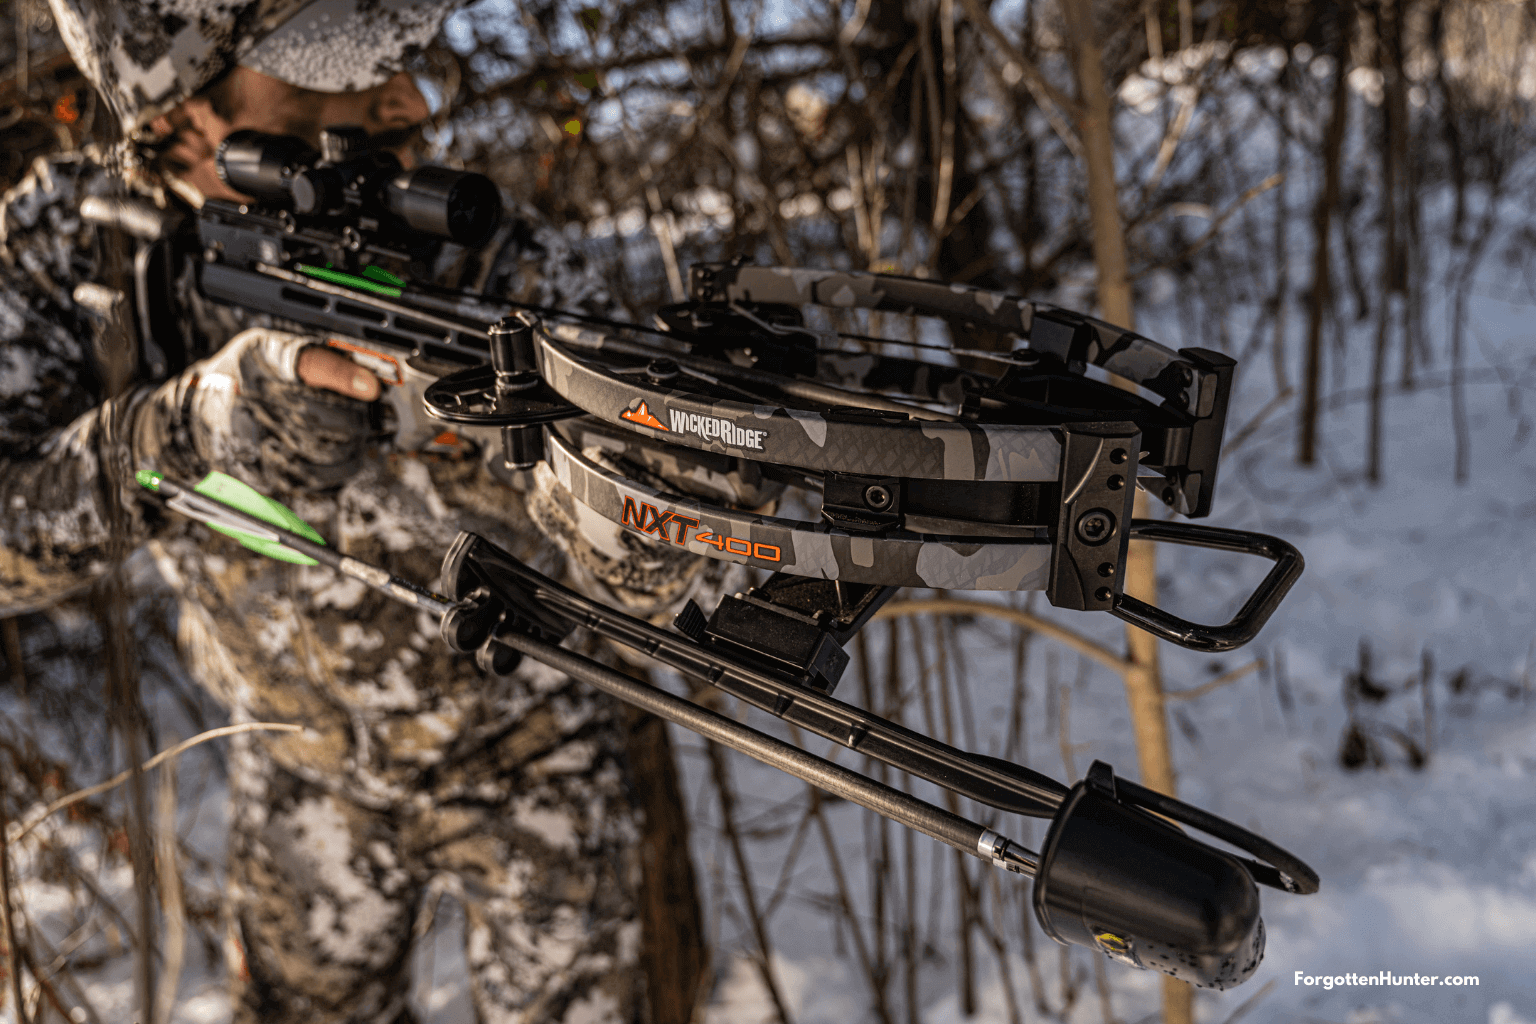 Wicked Ridge NXT 400 Review - The Narrowest and Most Accurate Wicked Ridge Crossbow So Far!